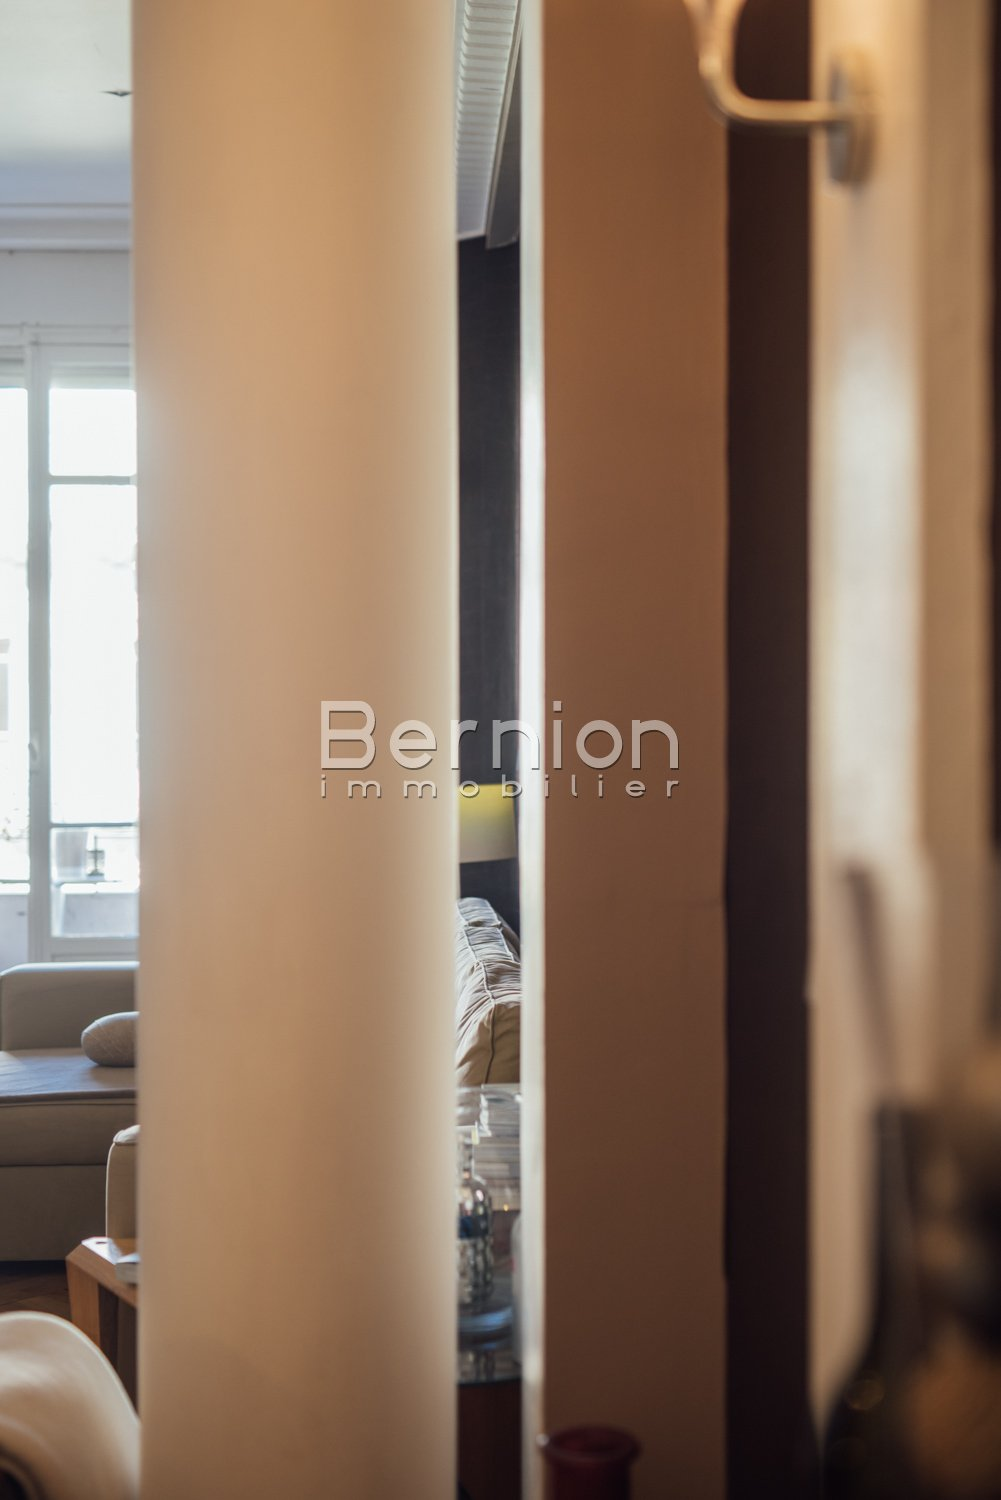 For Sale, Nice City Center Beautiful 72 sqm Apartment with terrace in Art Deco Building / photo 15